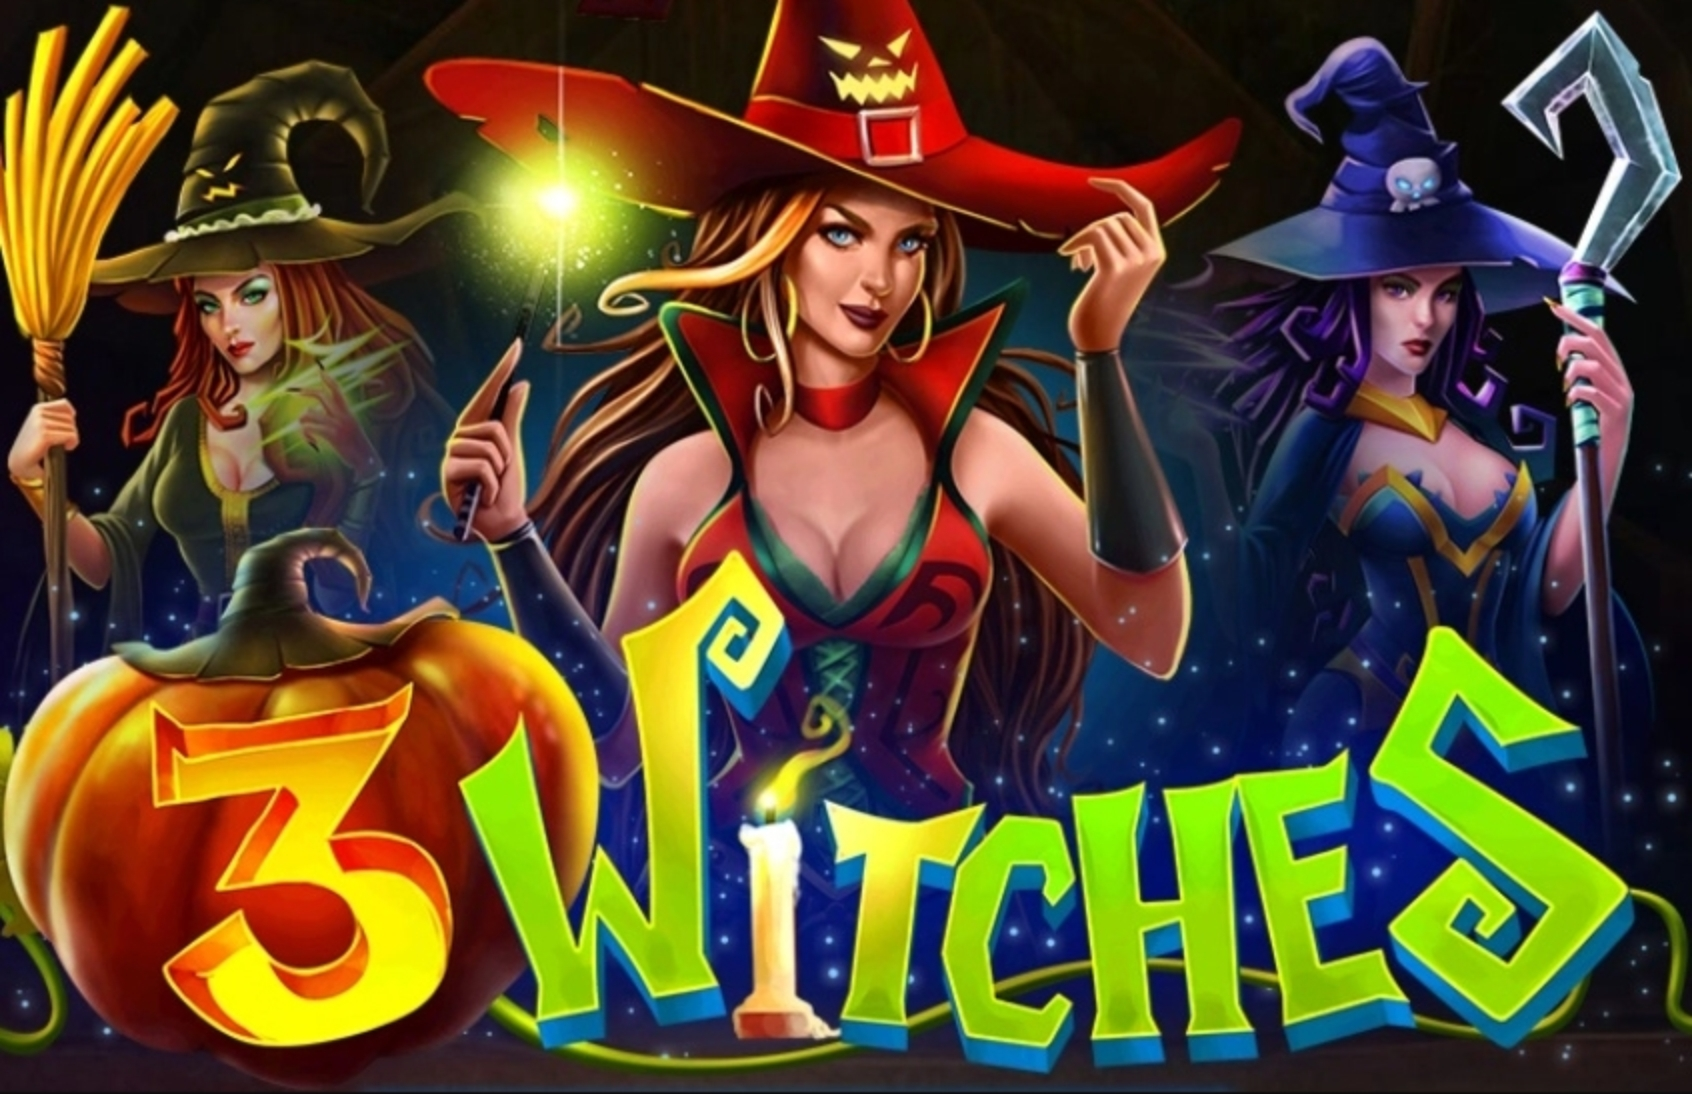 Se 3 Witches Online Slot Demo Game, The Stars Group